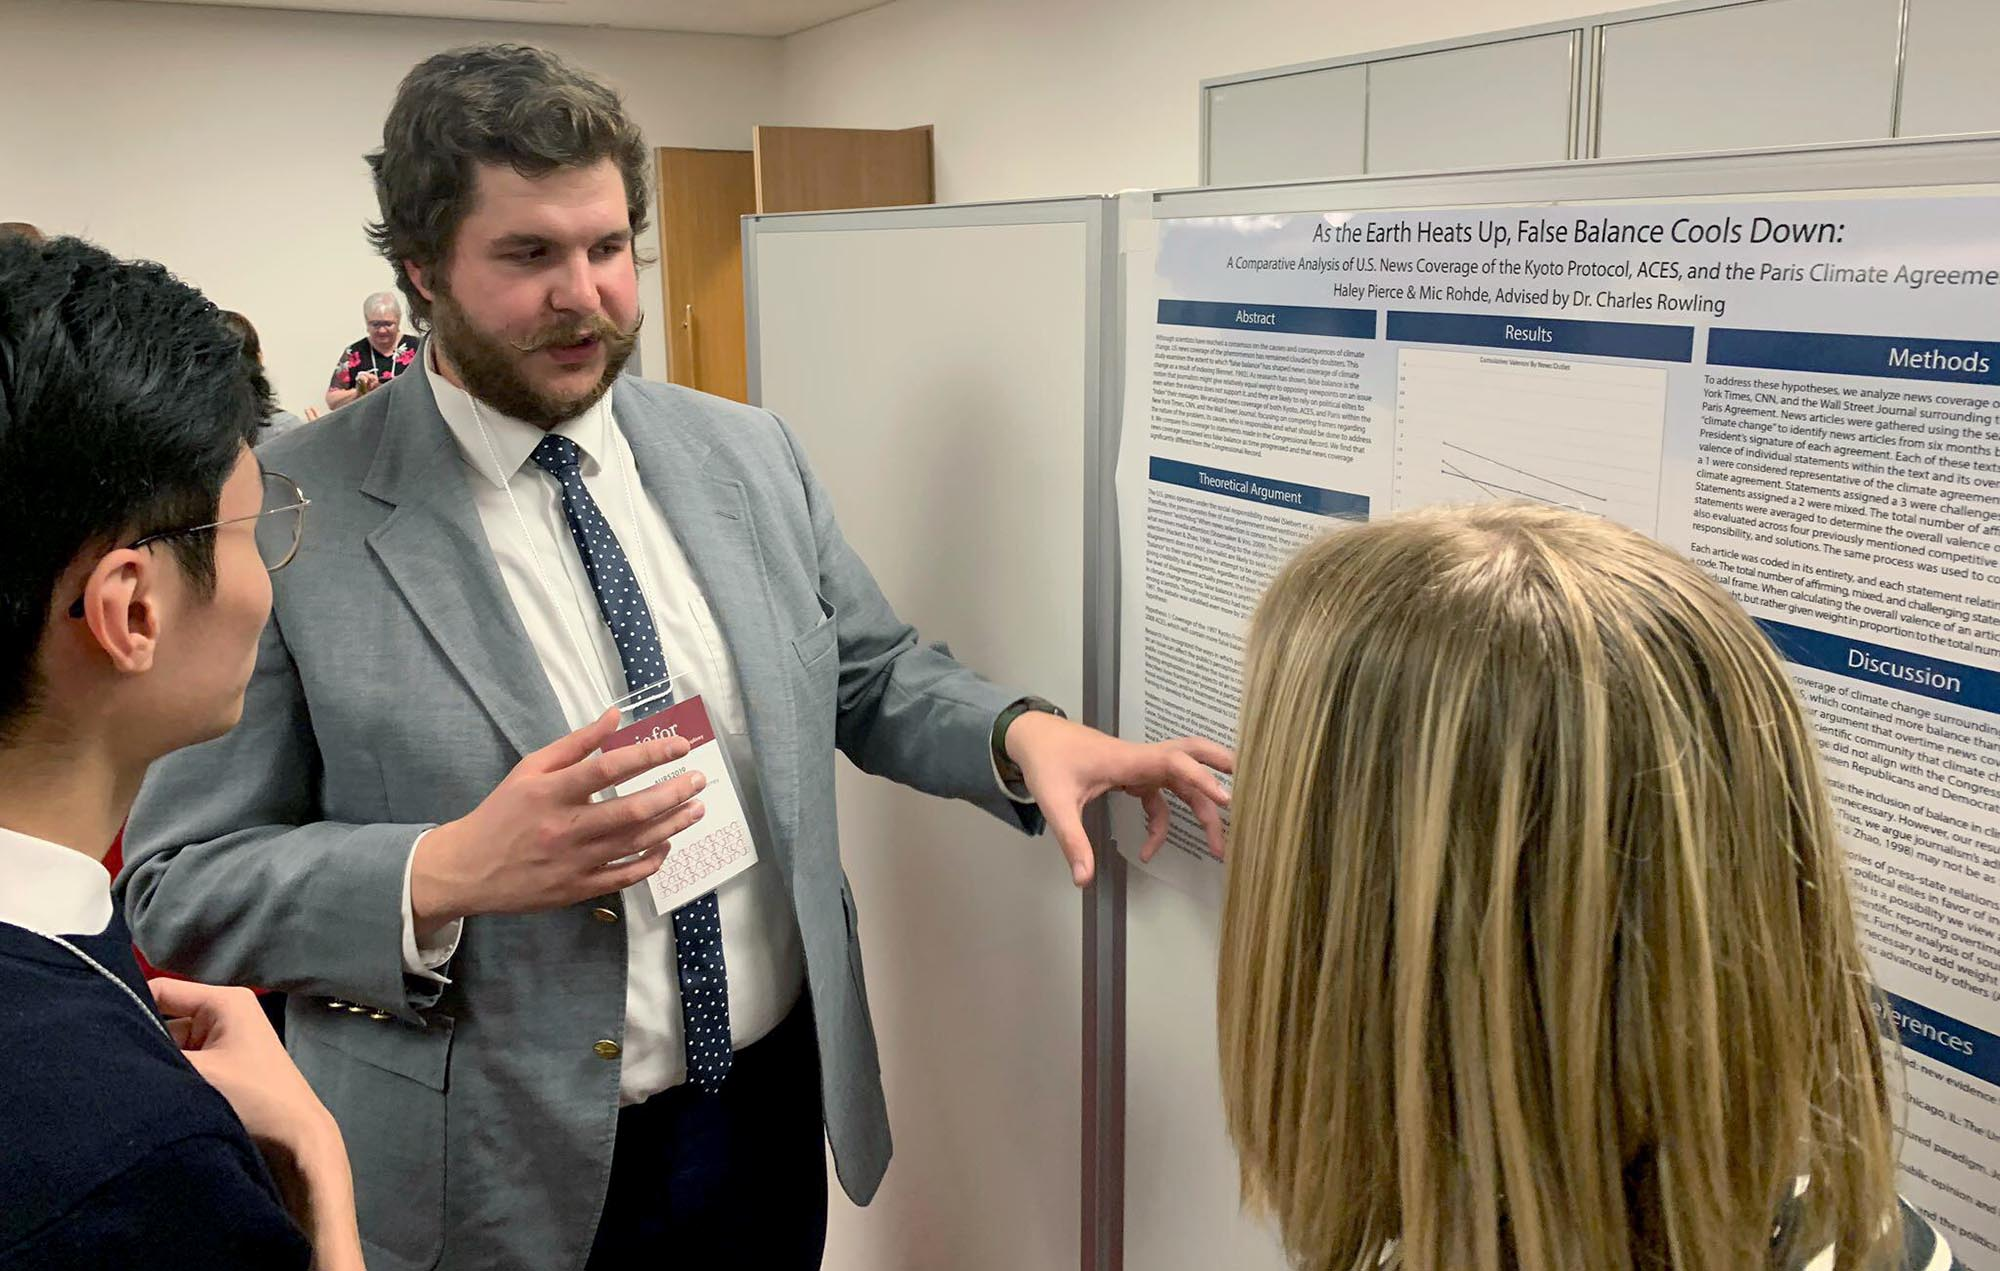 Mic Rohde of Kimball discusses his research during the Asian Undergraduate Research Symposium in Tokyo. Rohde and fellow UNK senior Haley Pierce of West Point presented their analysis of U.S. news coverage of the Kyoto Protocol, American Clean Energy and Security Act and Paris Agreement. (Courtesy photos)